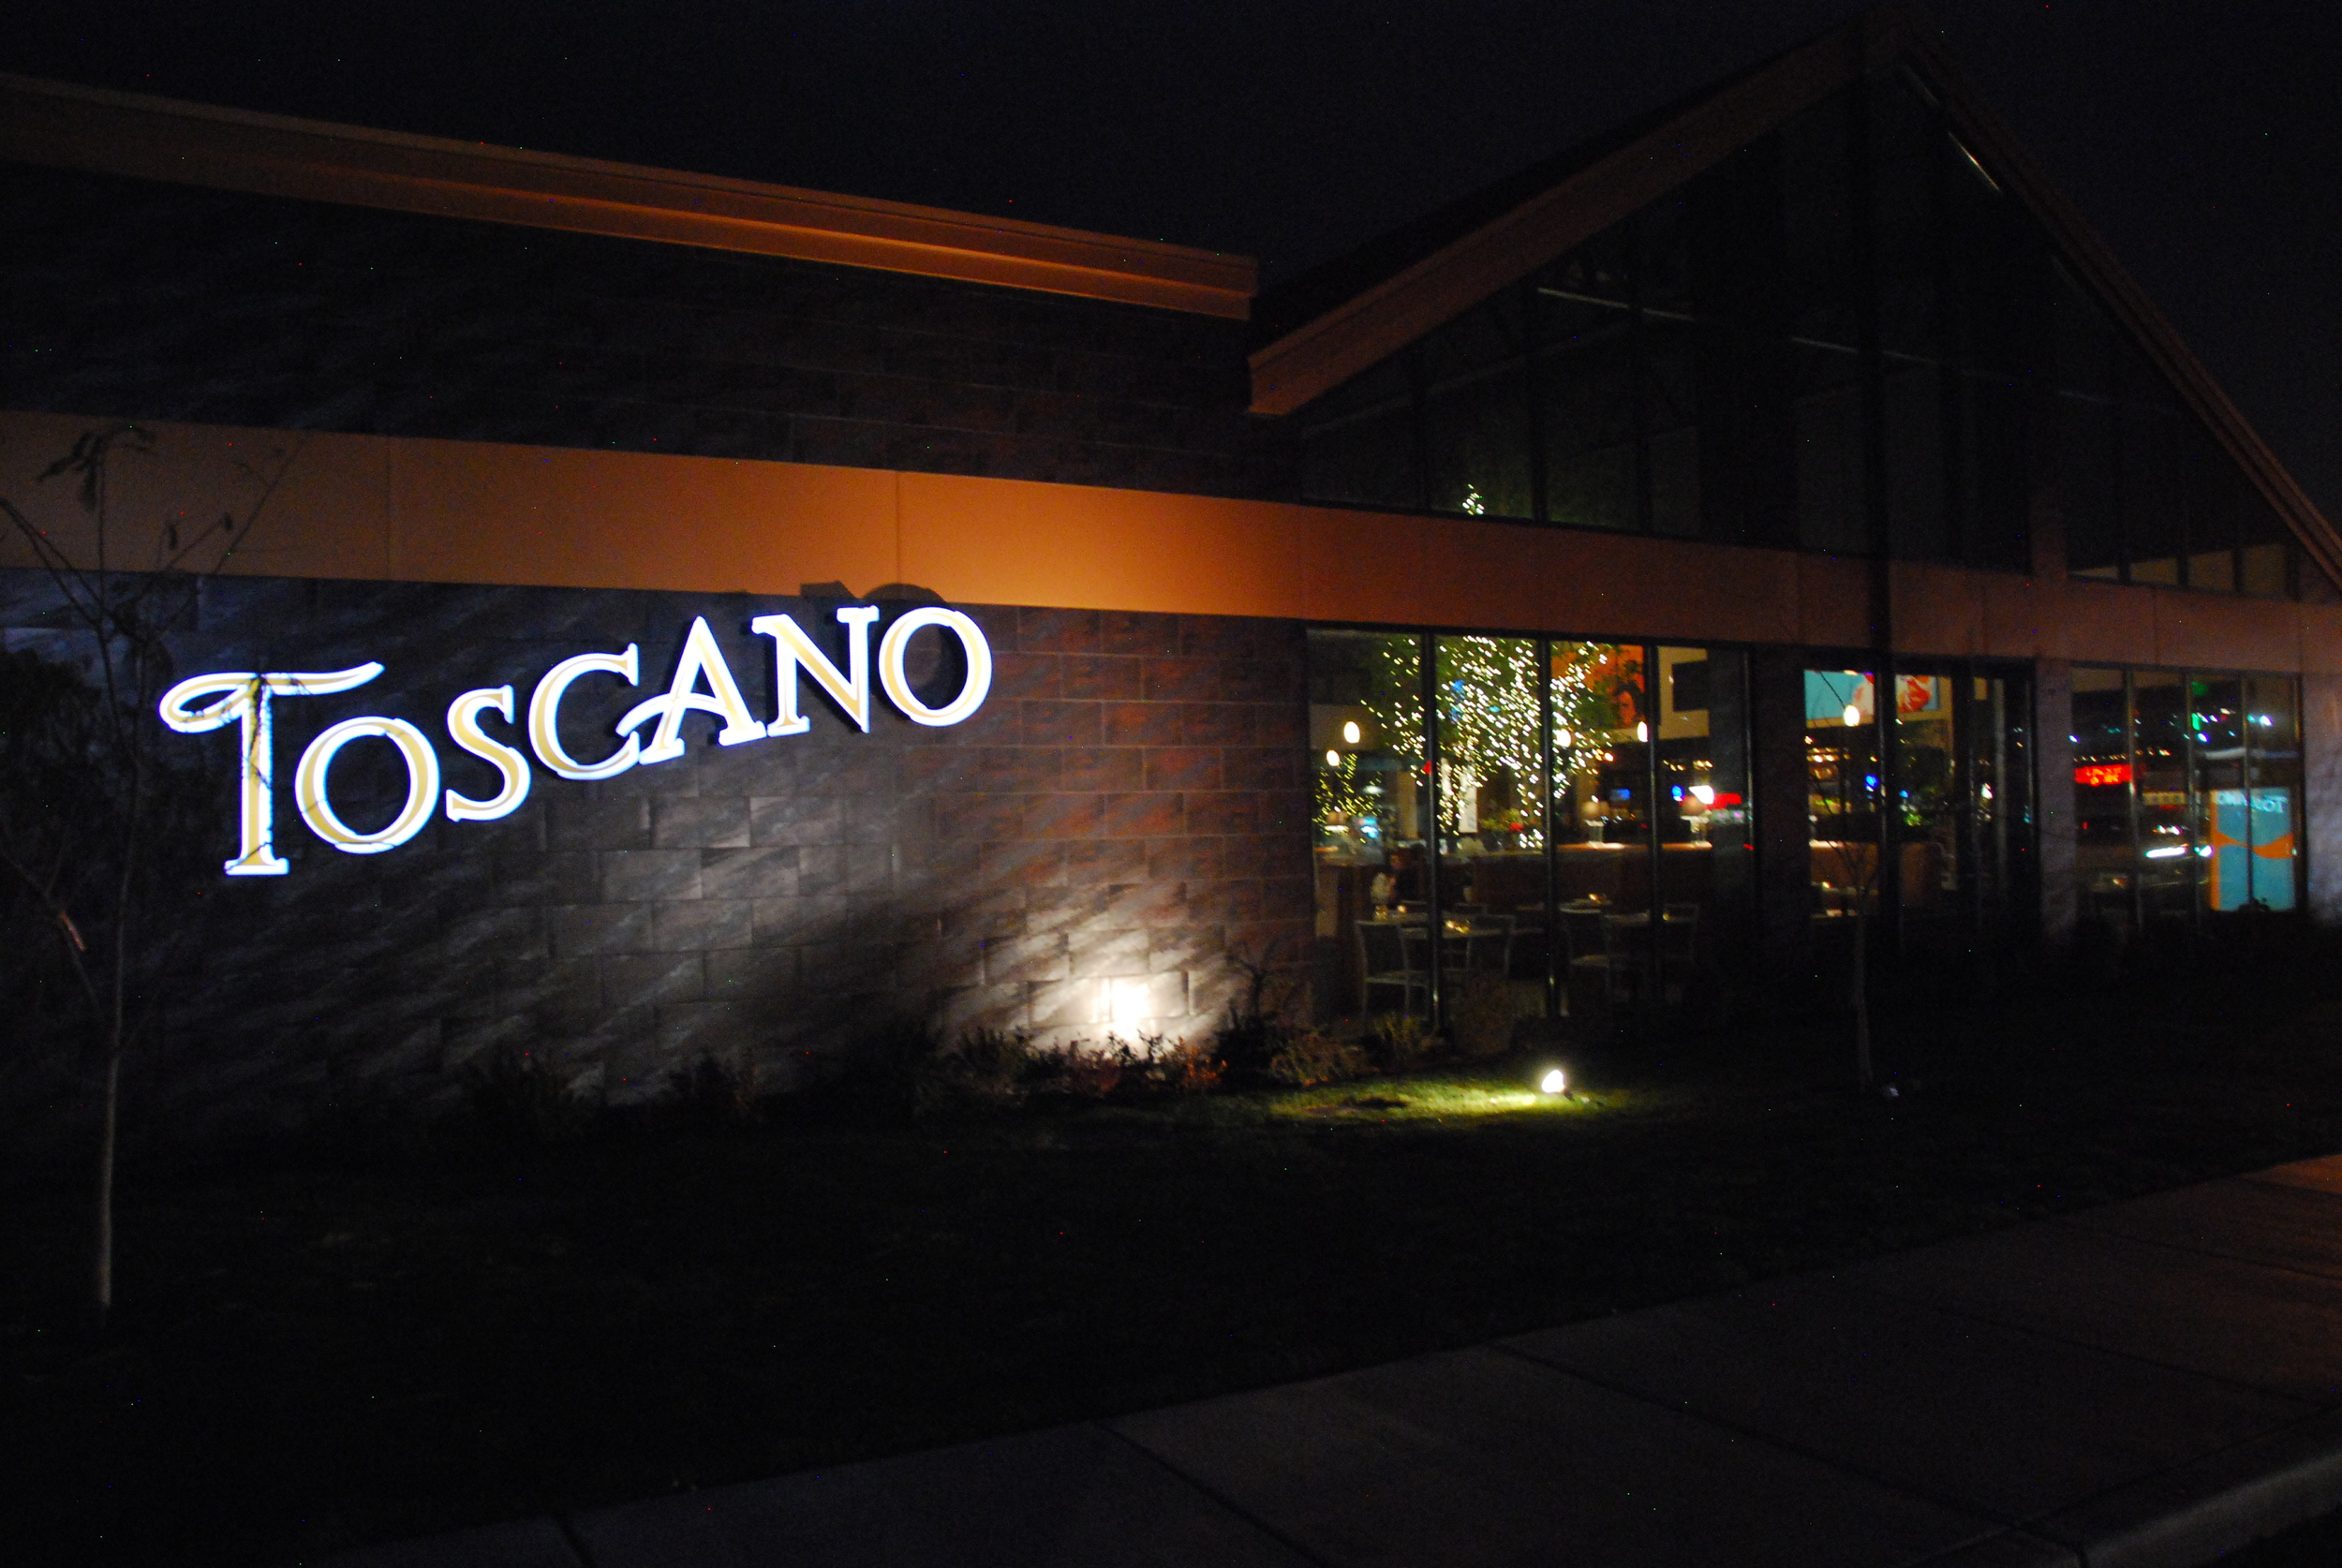 Toscano Night Picture